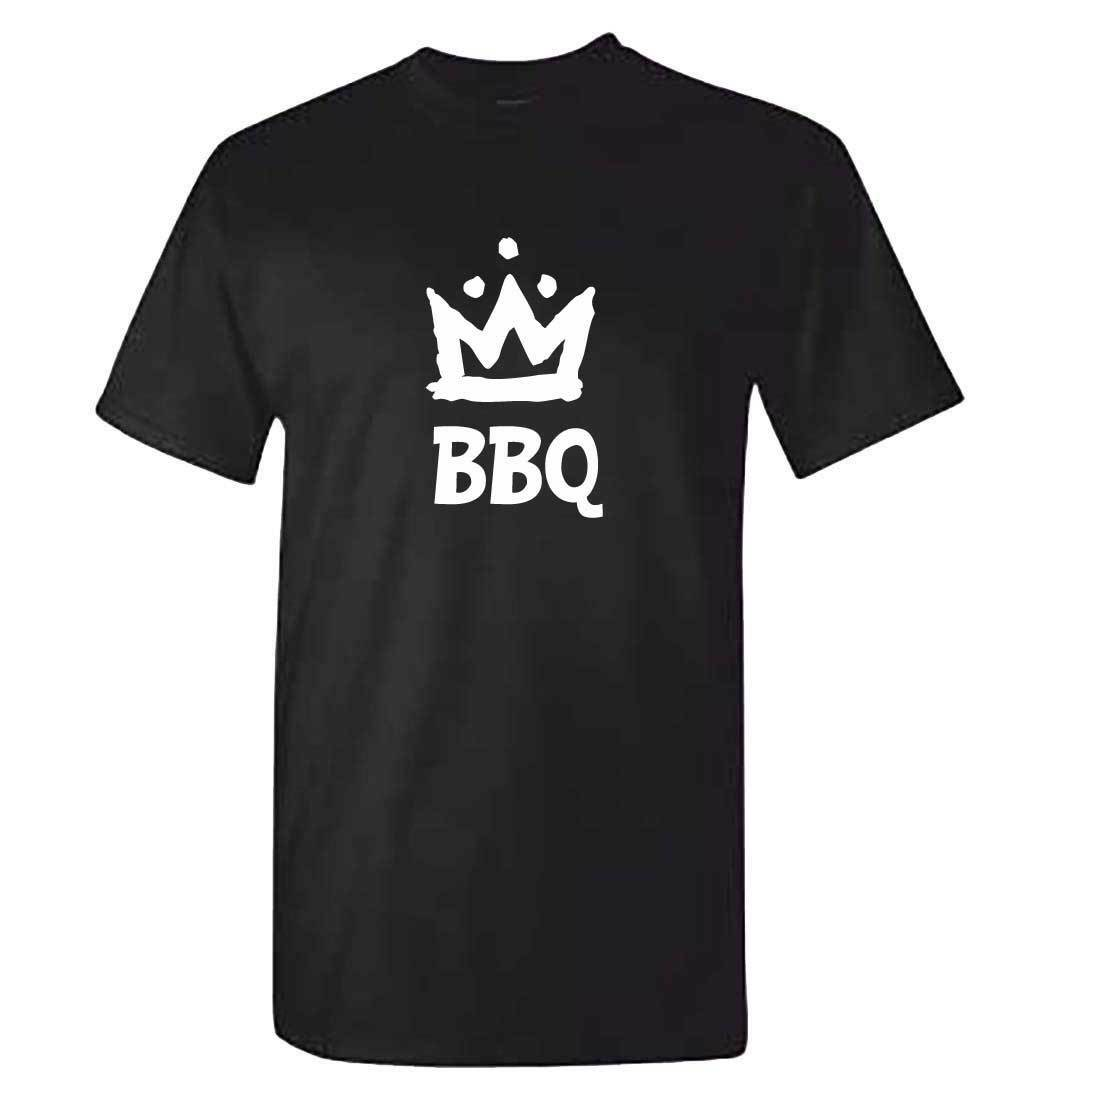 Mens BBQ KING T Shirt - Funny Braai Barbecue TShirt - Tools Accessories Gift